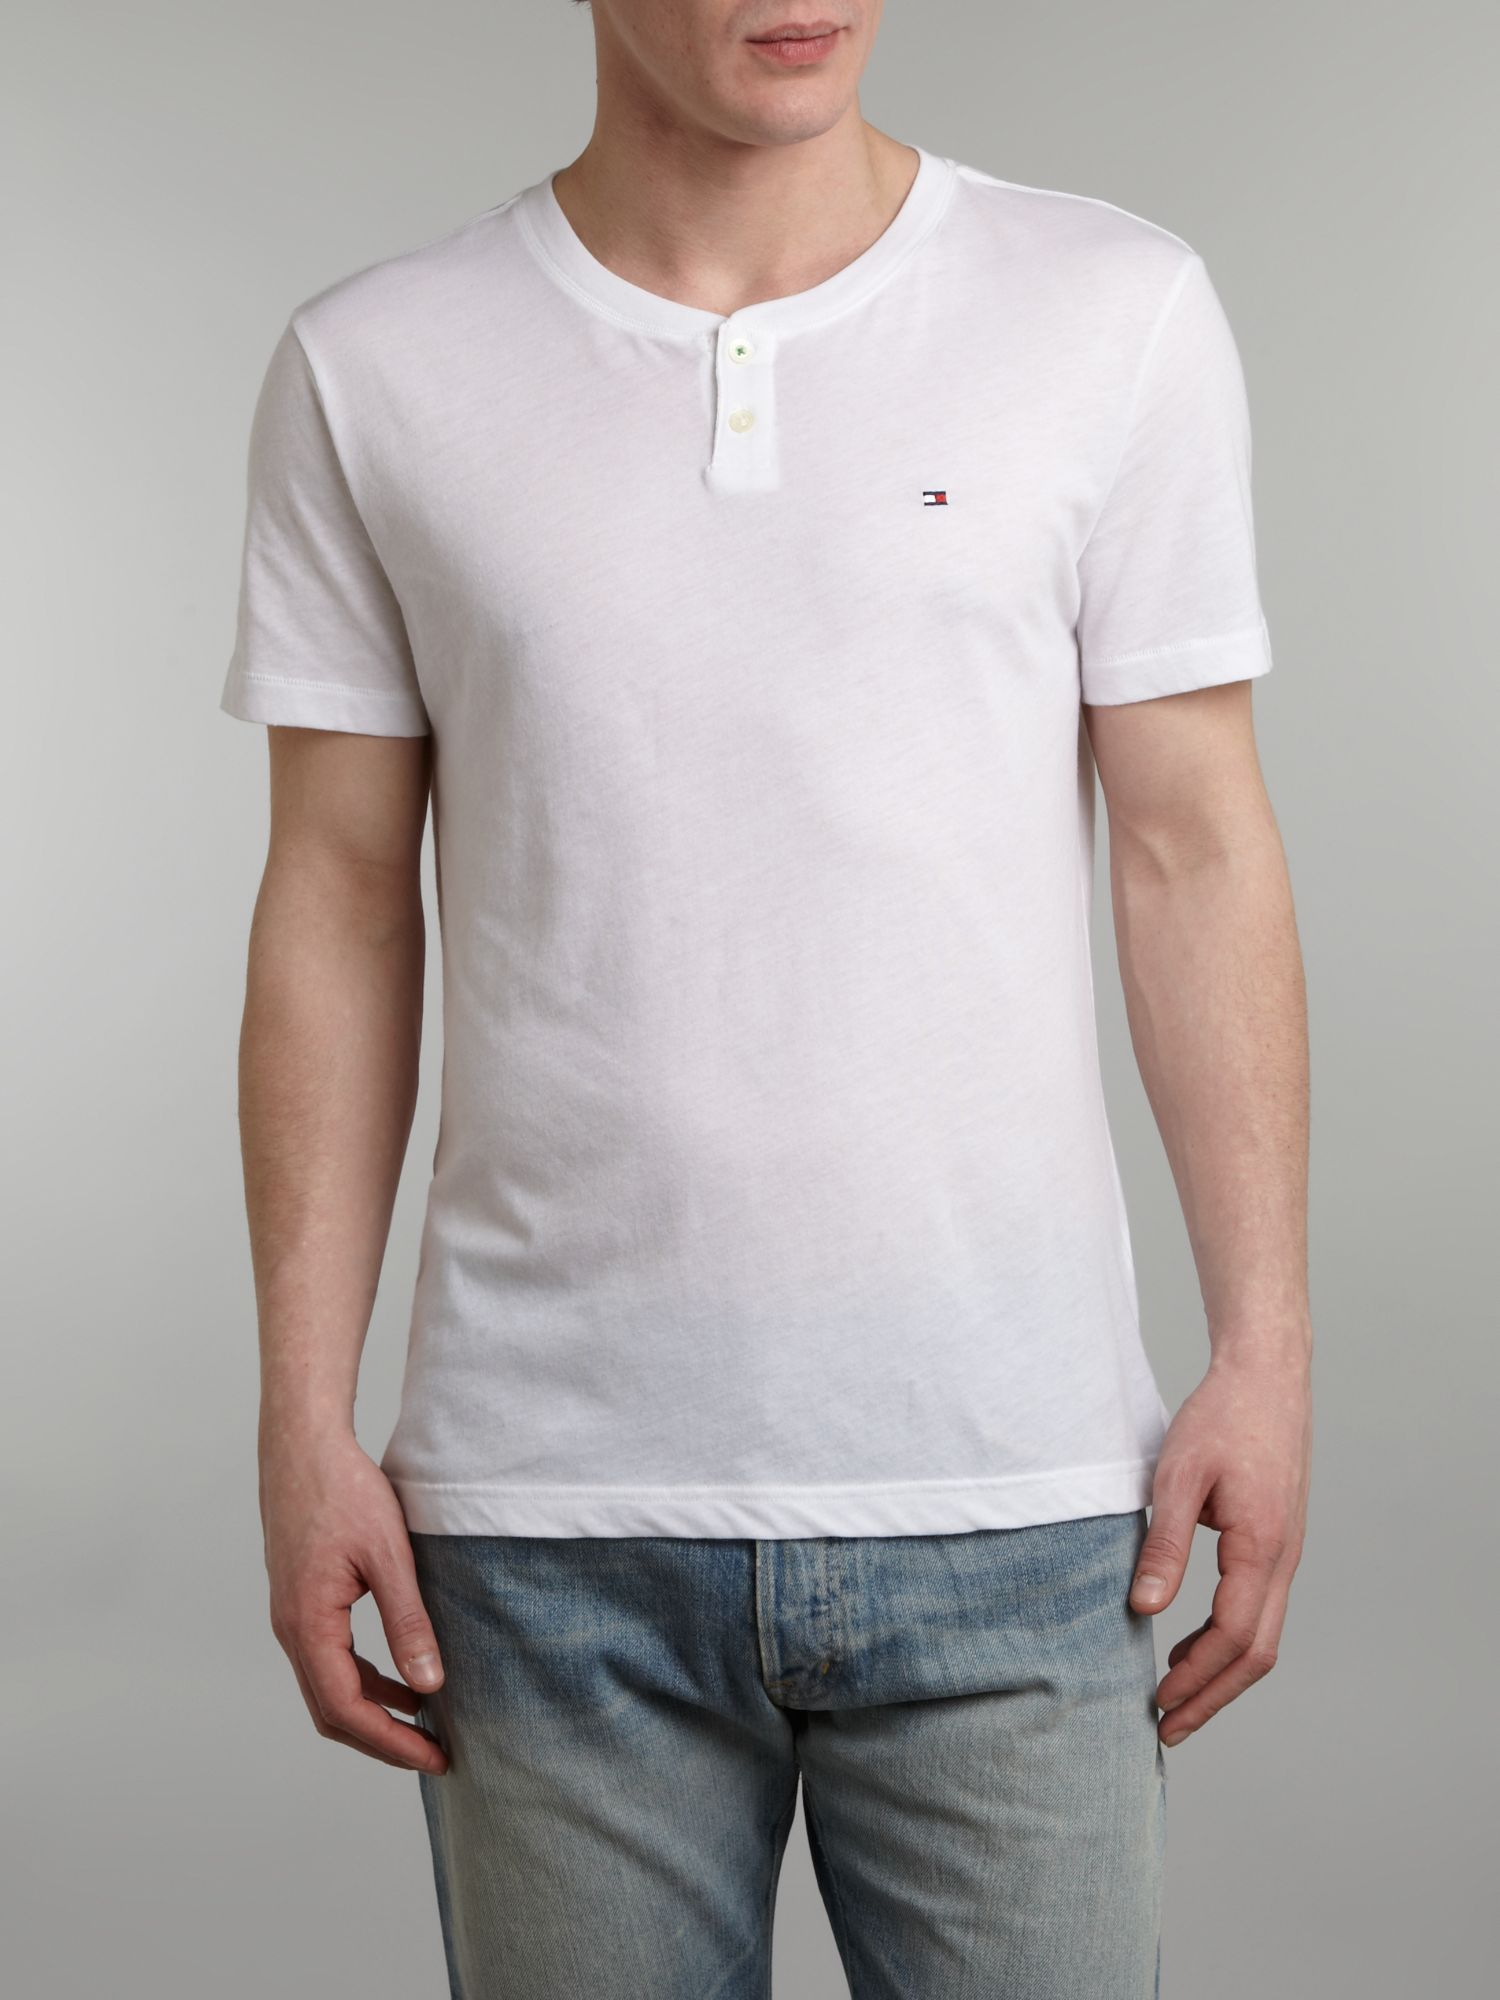 Short sleeve button neck tshirt